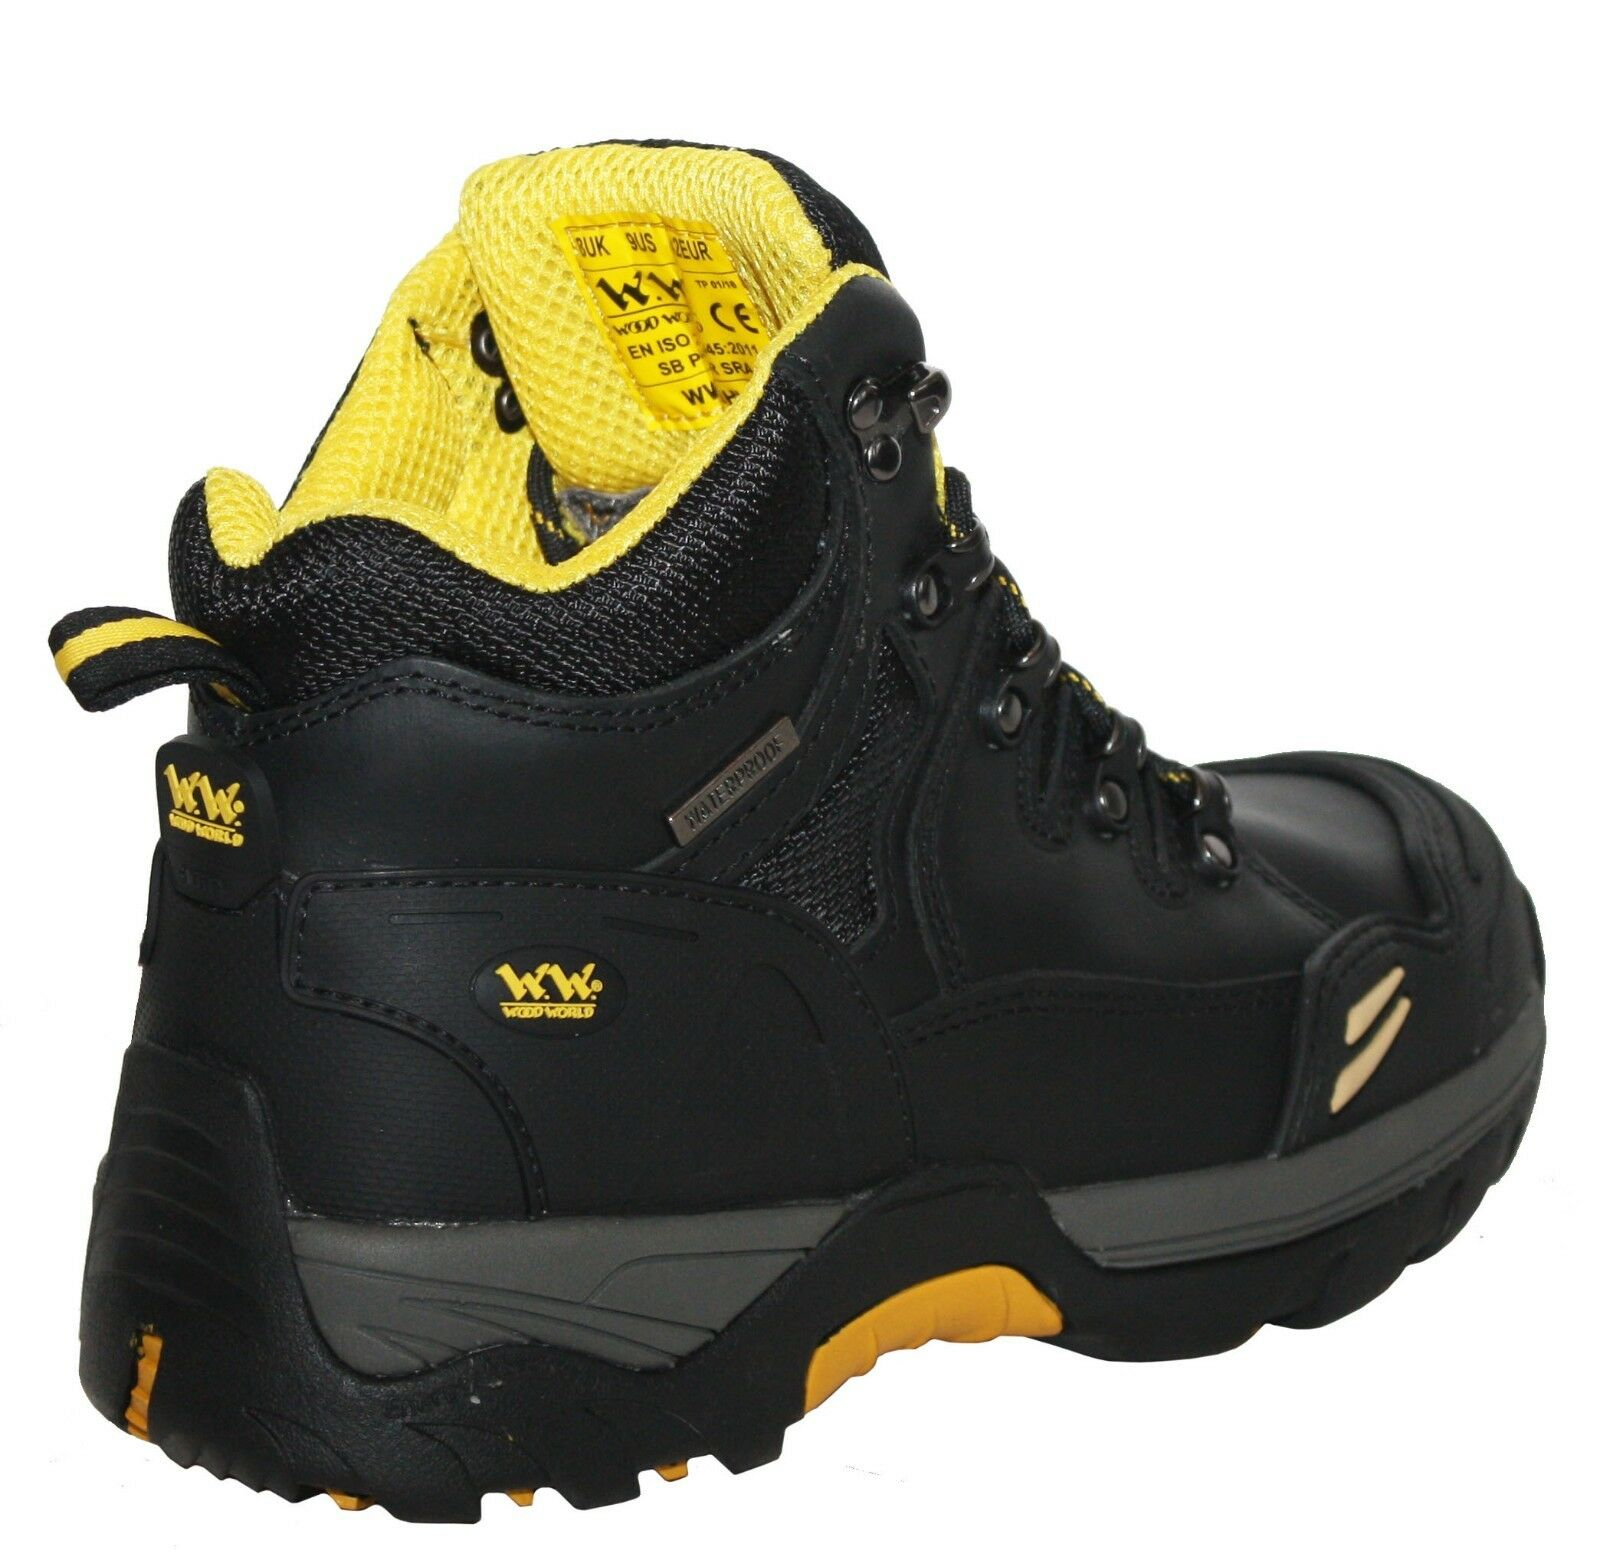 reputable site 14564 13dc7 ... Nouveau Homme Wood World Safety Safety Safety Steel Toe Cap Imperméable  Miel Travail Pointure 300744